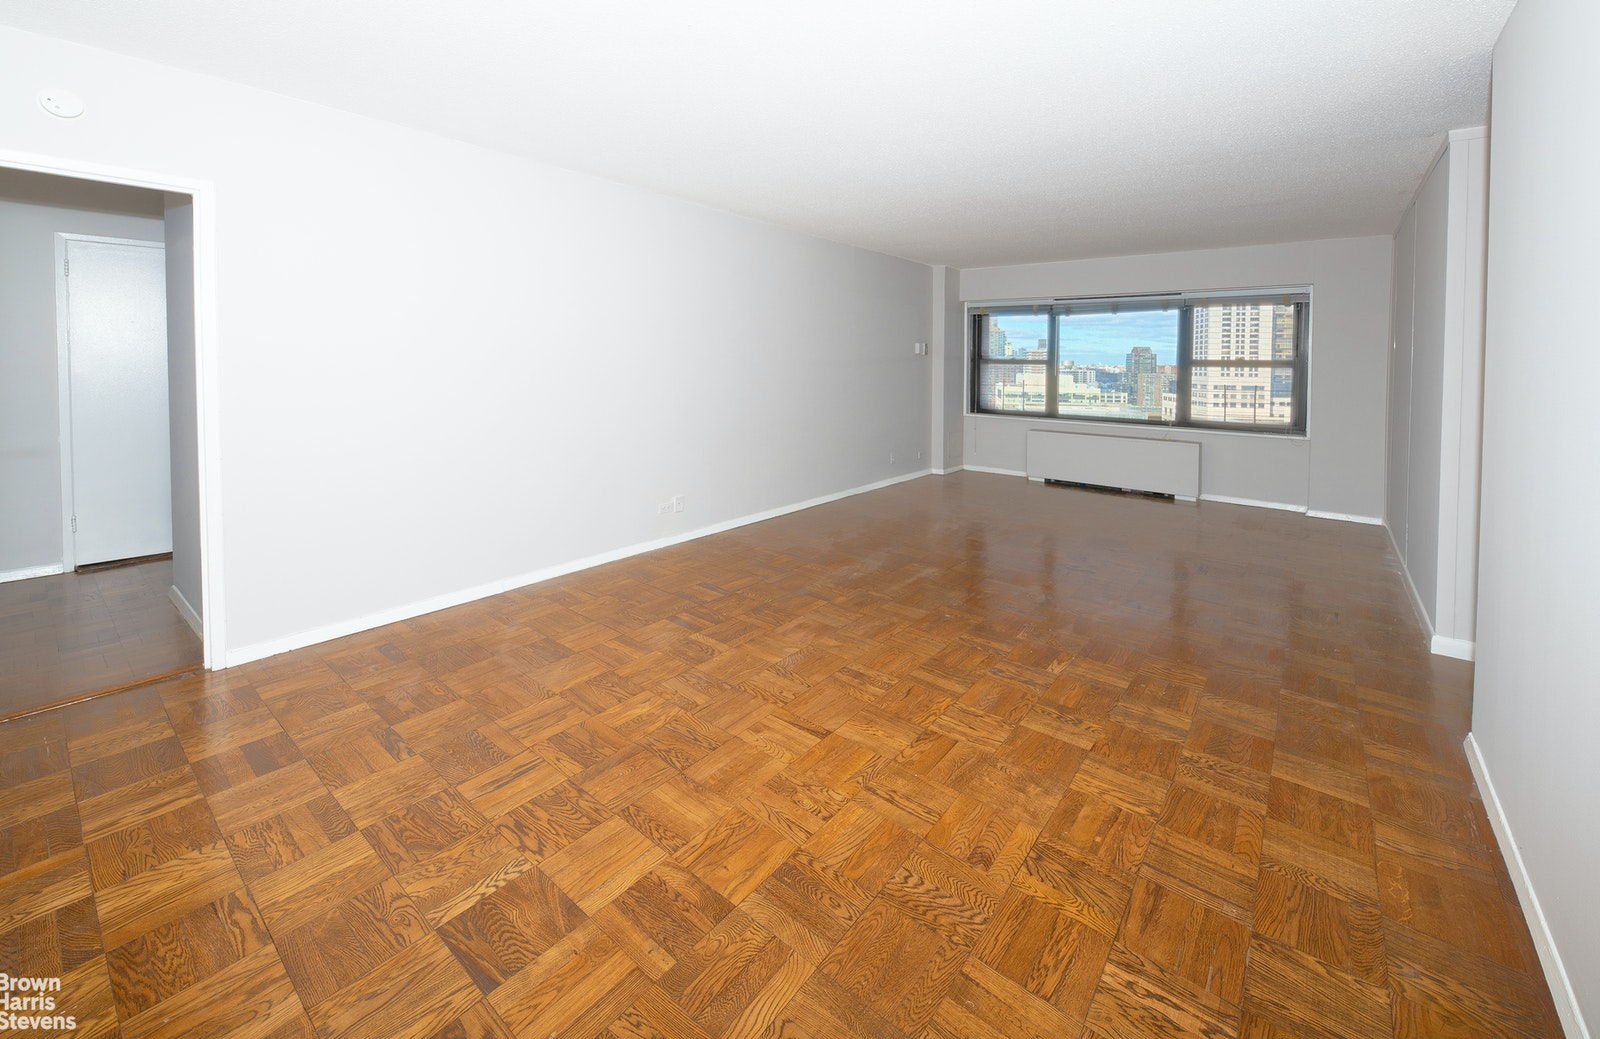 20 WEST 64TH STREET 15J, Upper West Side, $4,500, Web #: 20563119